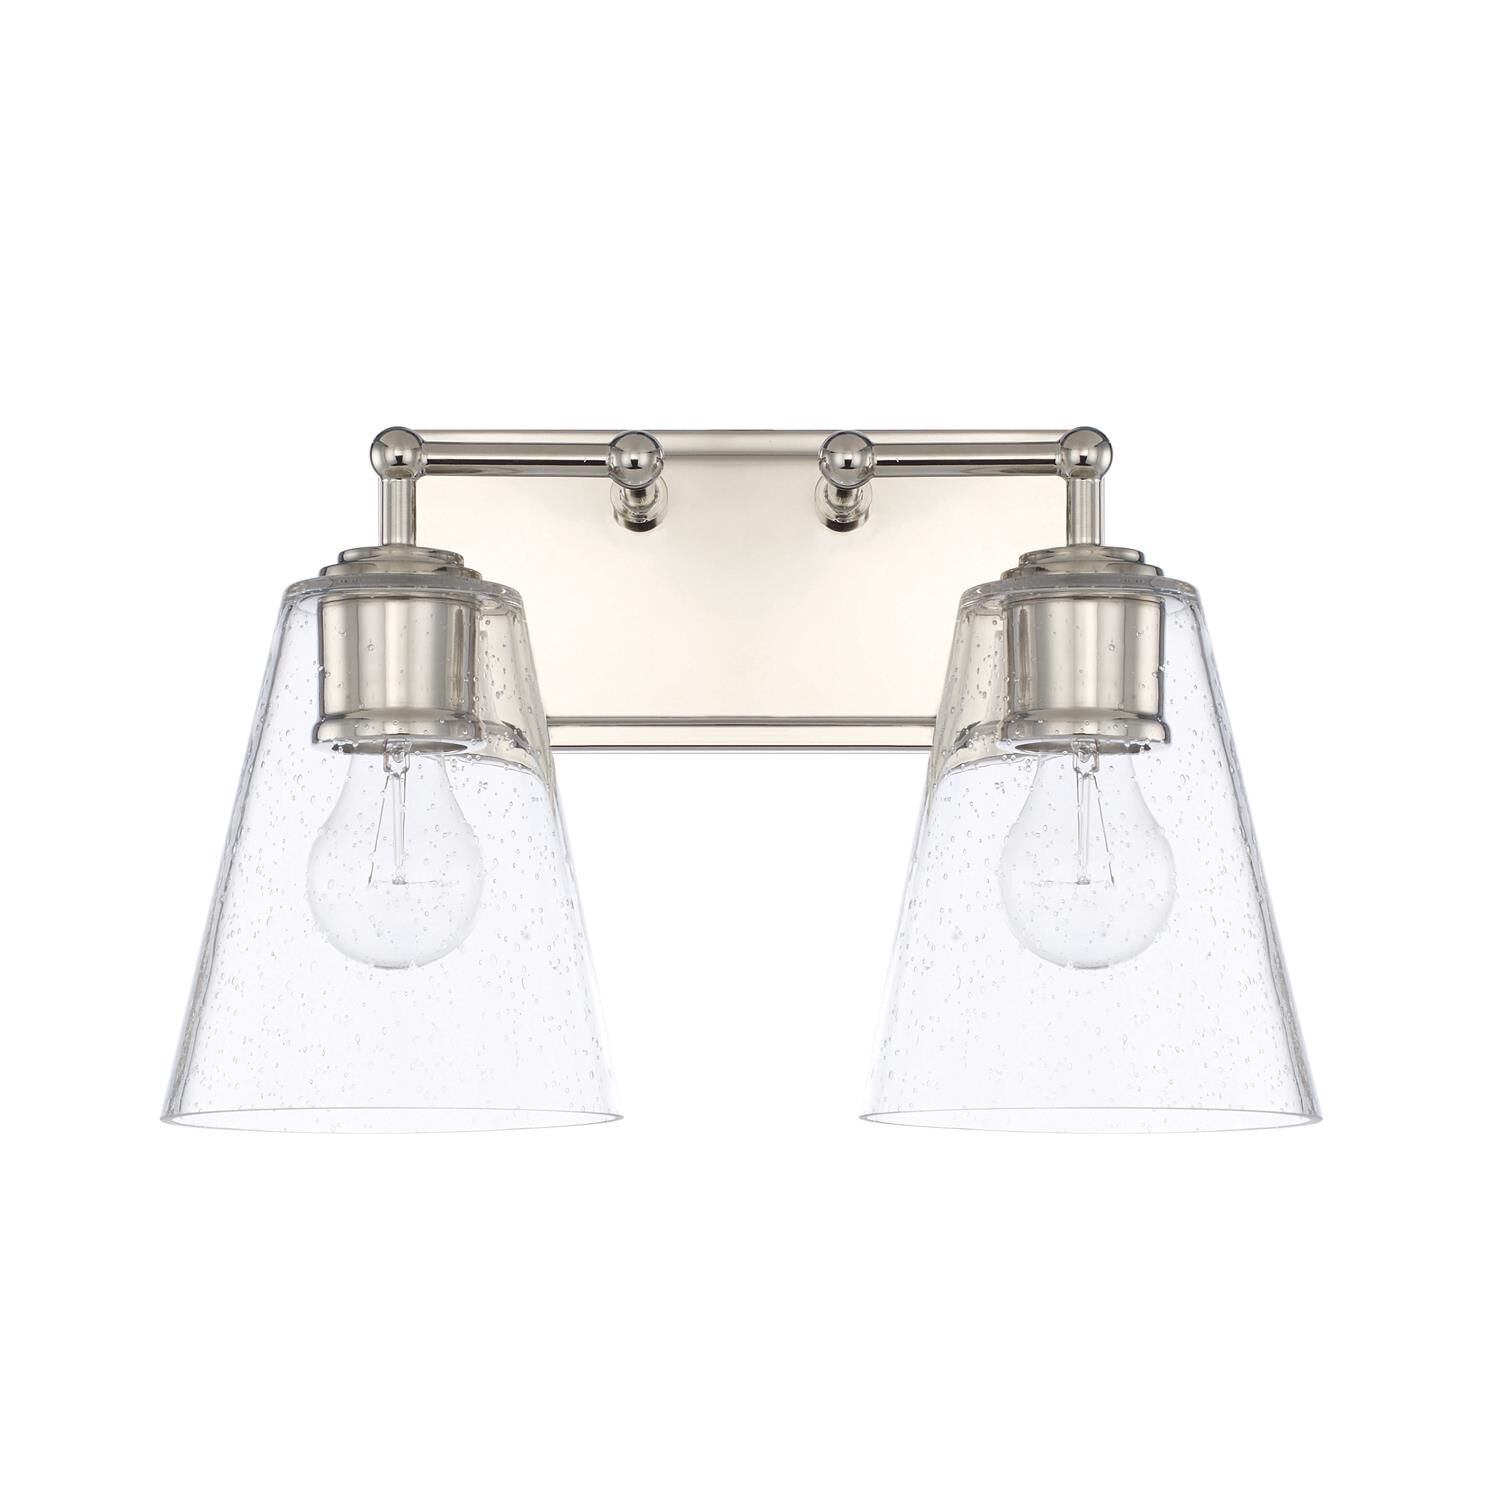 Capital Lighting Fixture Company 14 Inch 2 Light Bath Vanity Light - 121721pn-463 - Transitional